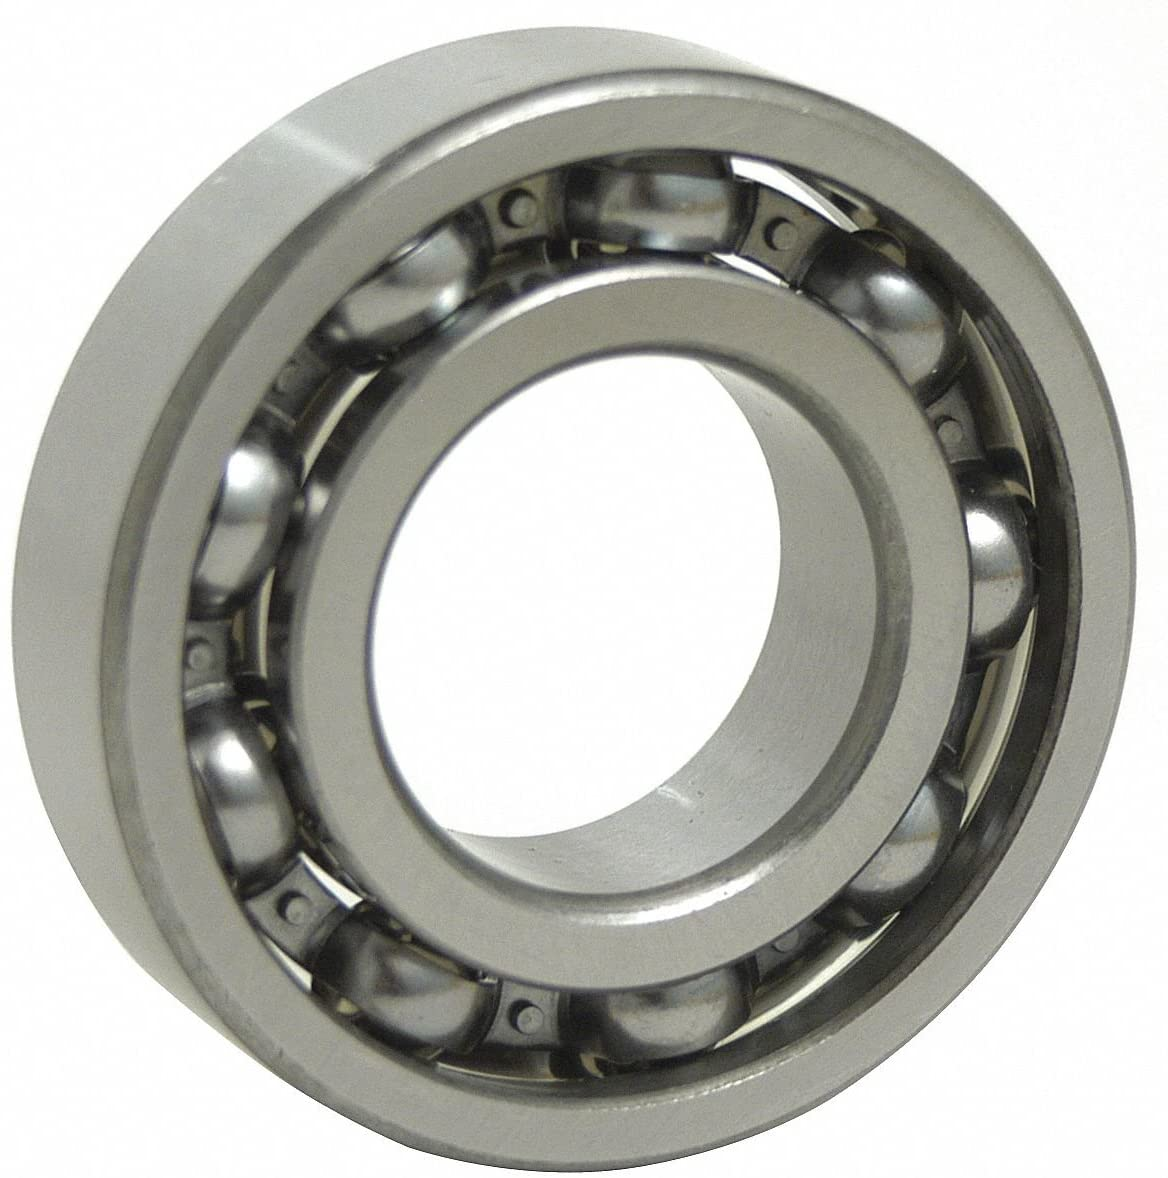 BL SS6003 - Radial Ball Bearing SS 17mm SS6003 - Pack of 2